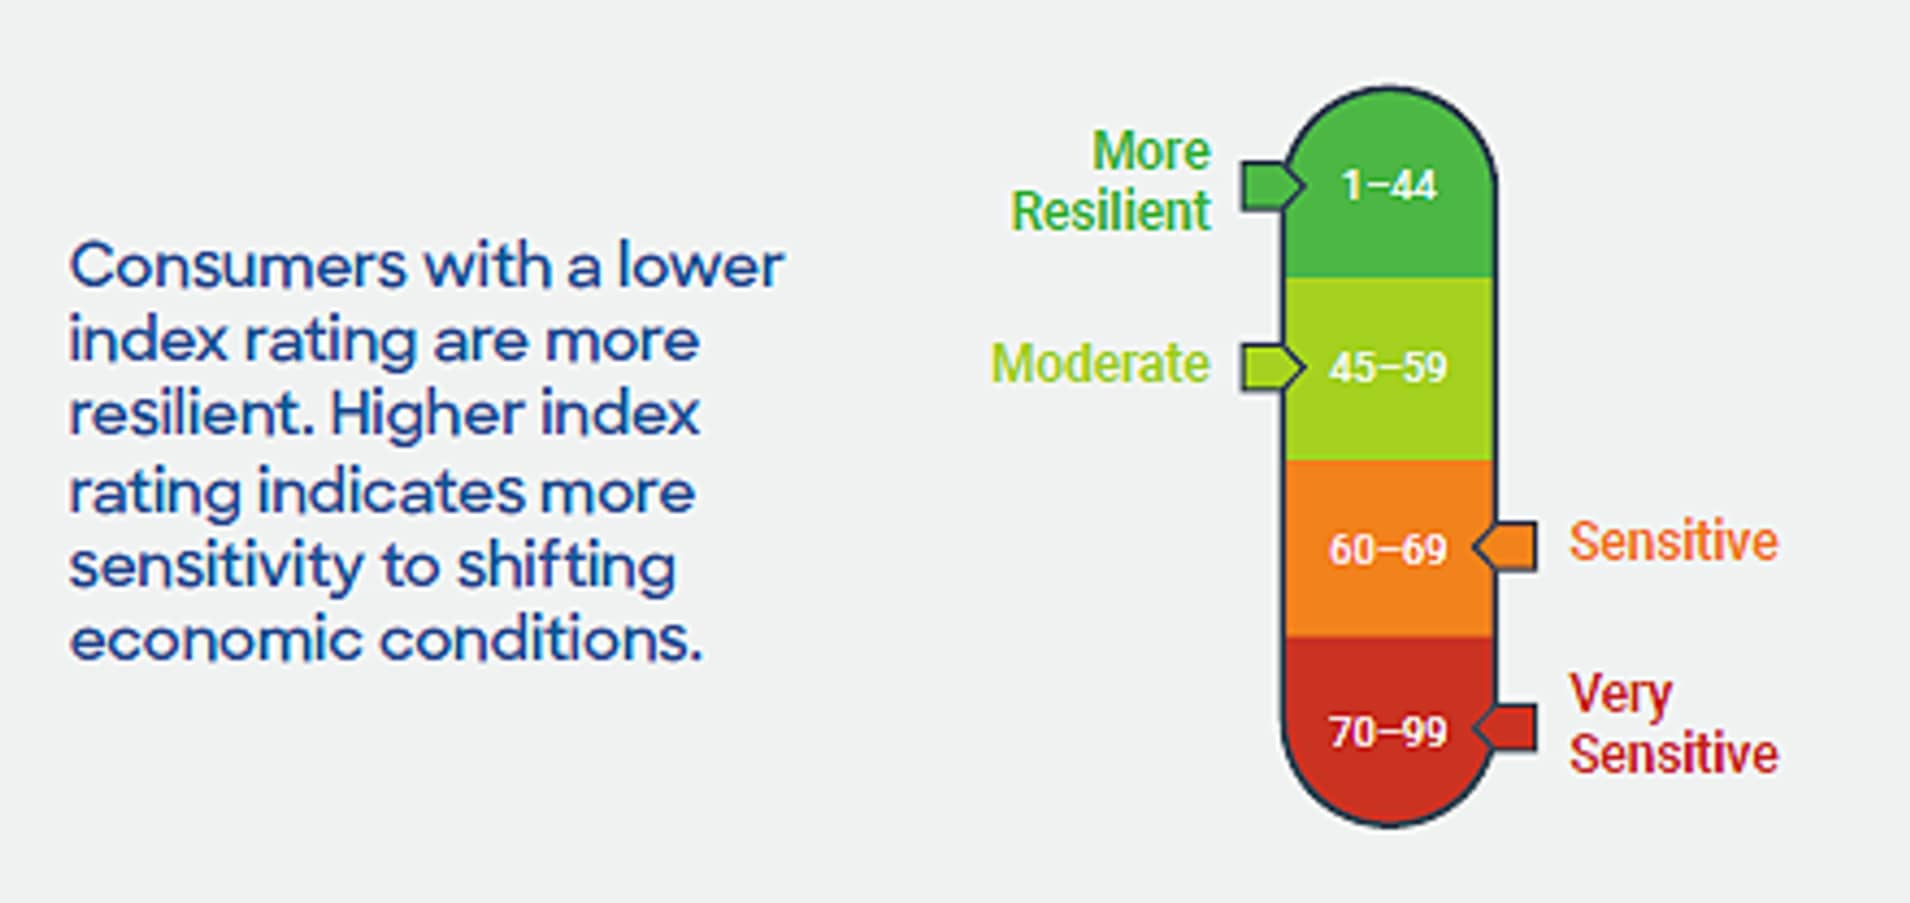 FICO Resilience Index ranks consumers by their sensitivity to severe economic stress. Consumers with scores in the 1 to 44 range are viewed as the most prepared and able to weather the next economic shift.